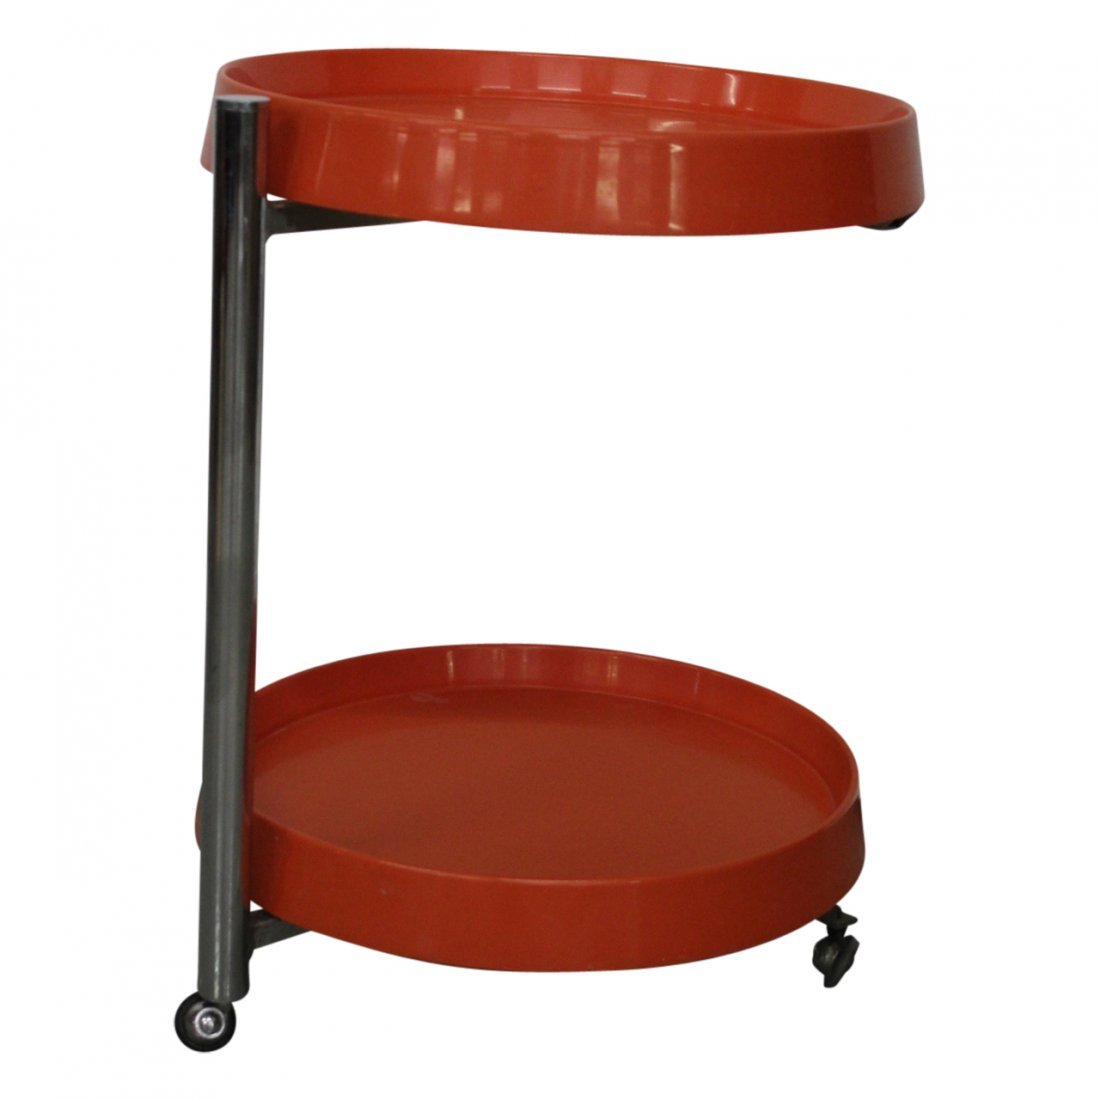 Italian Modern Orange and Chrome End Table